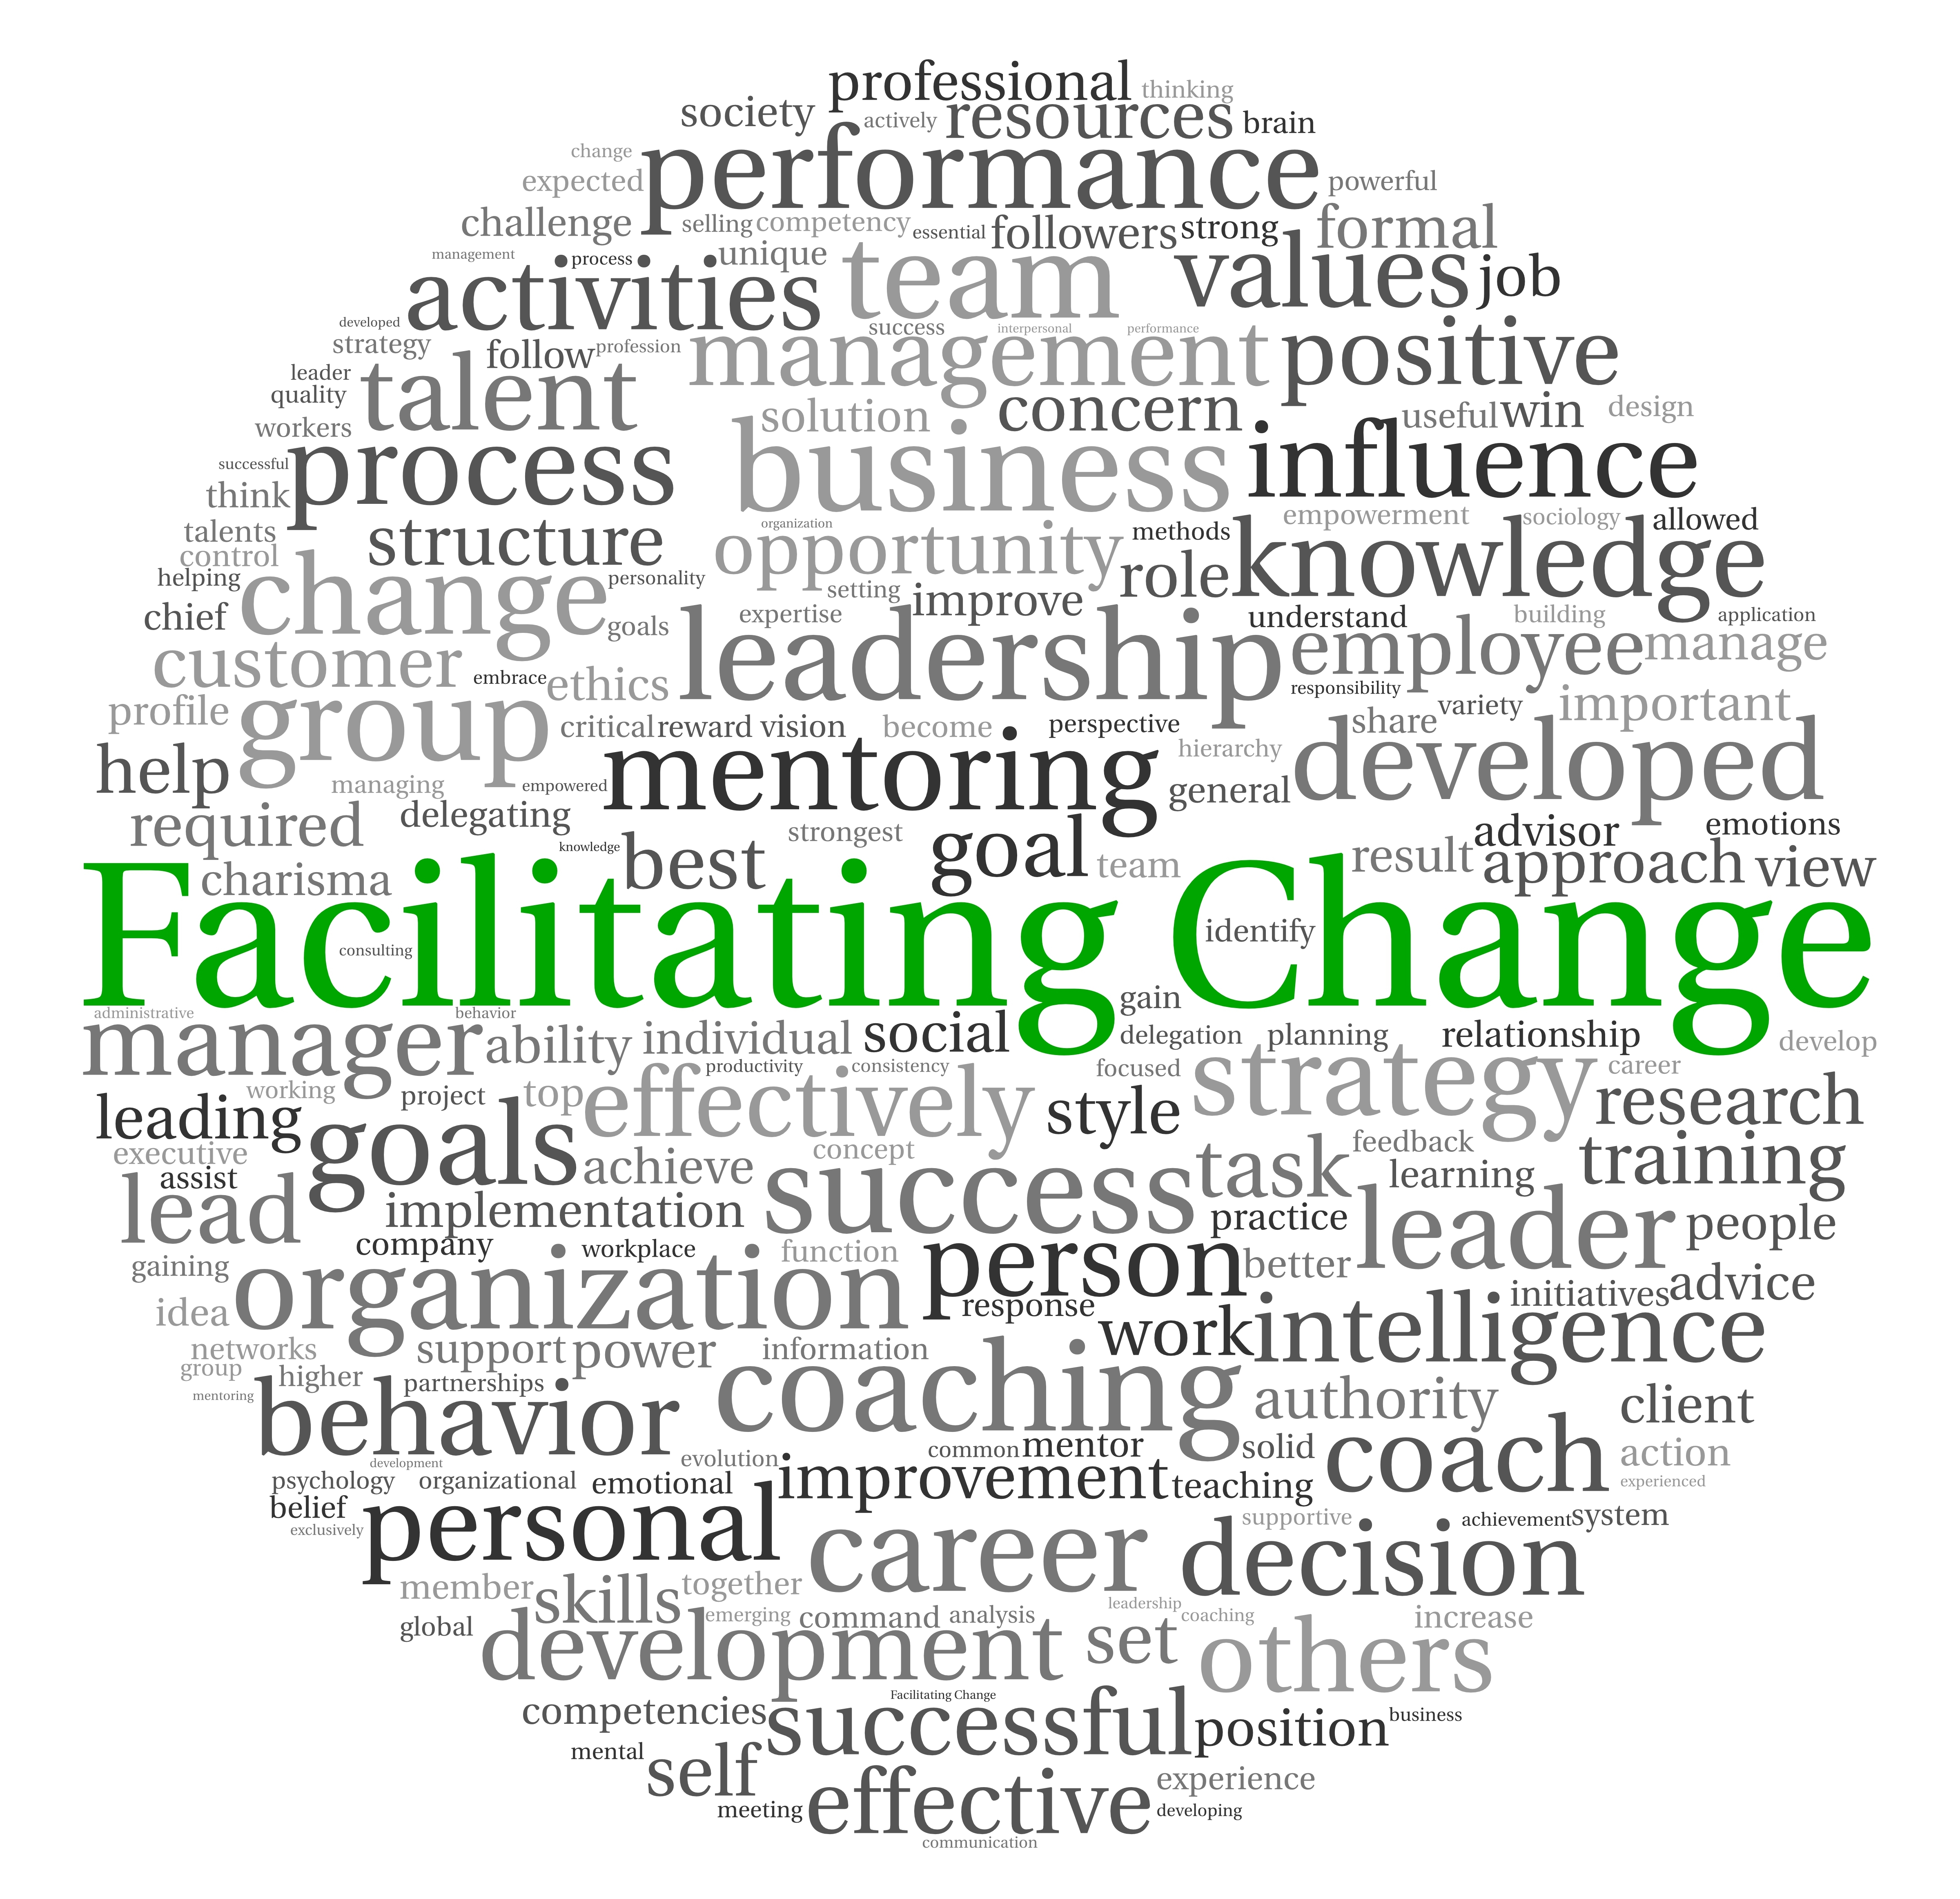 facilitating change in the workplace Please, check the official conference website for possible changes, before you make any traveling arrangements prices are for evaluation only.